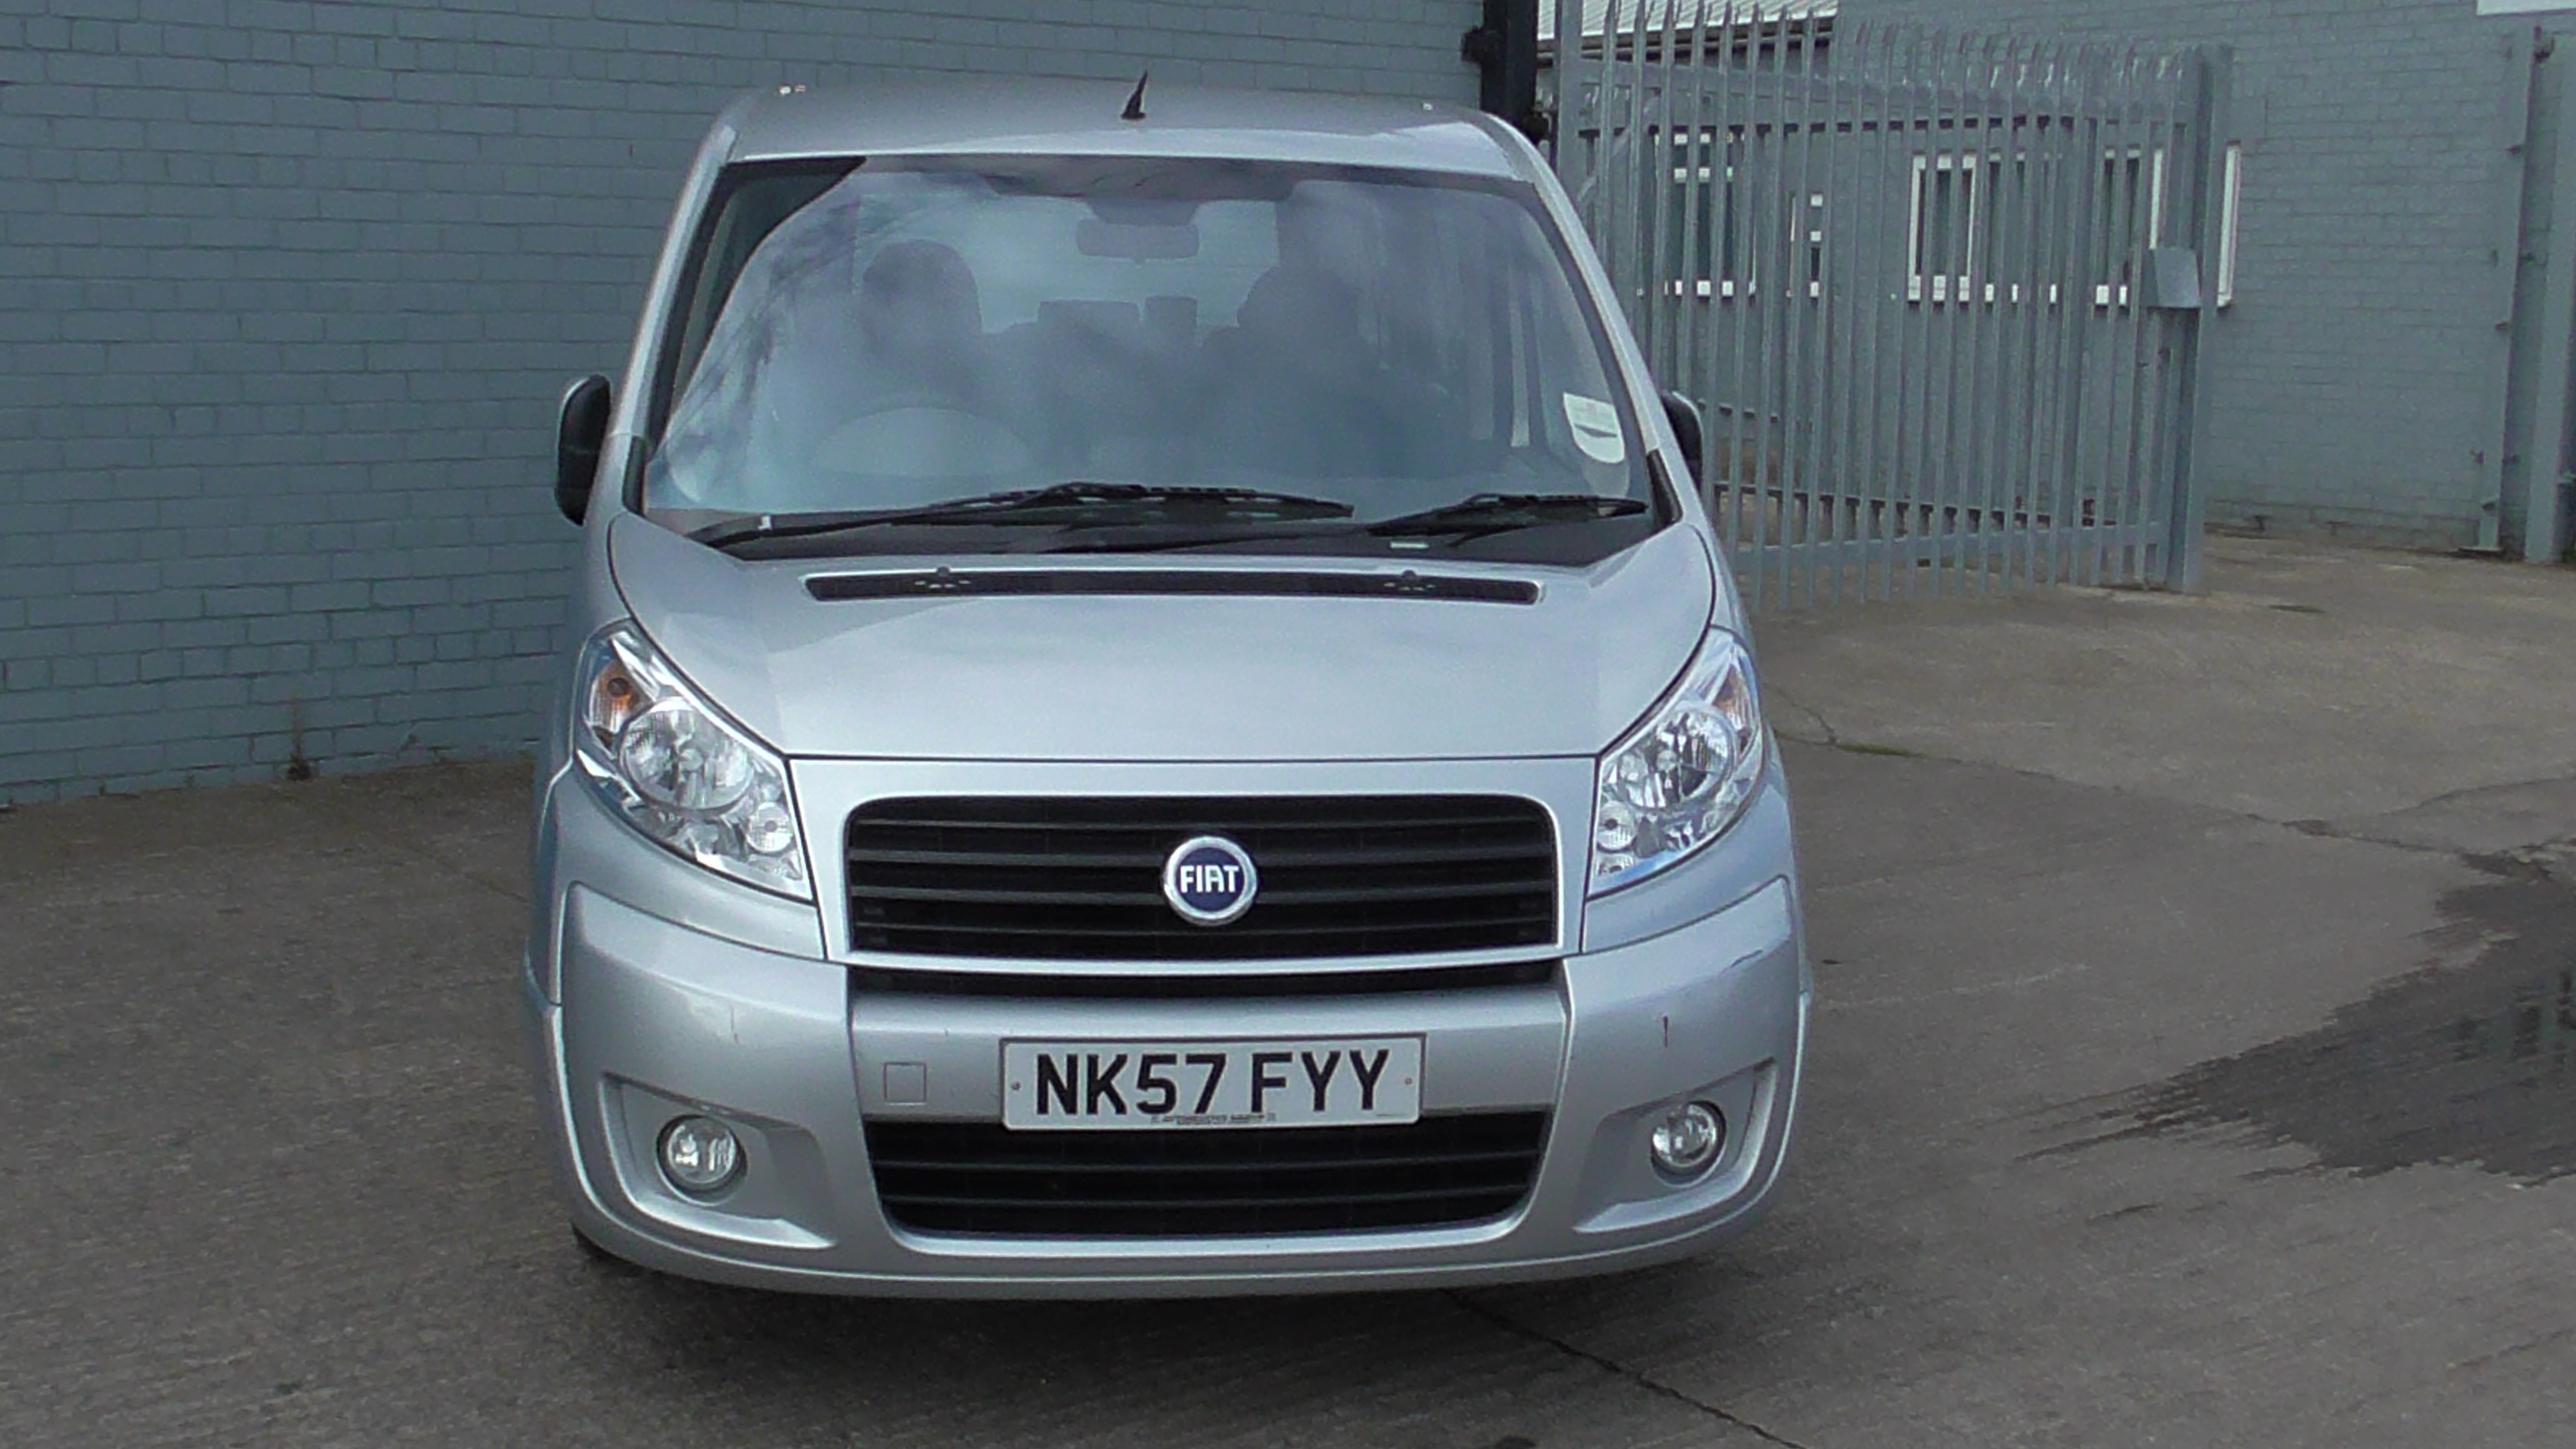 Used Mobility Cars For Sale Scotland